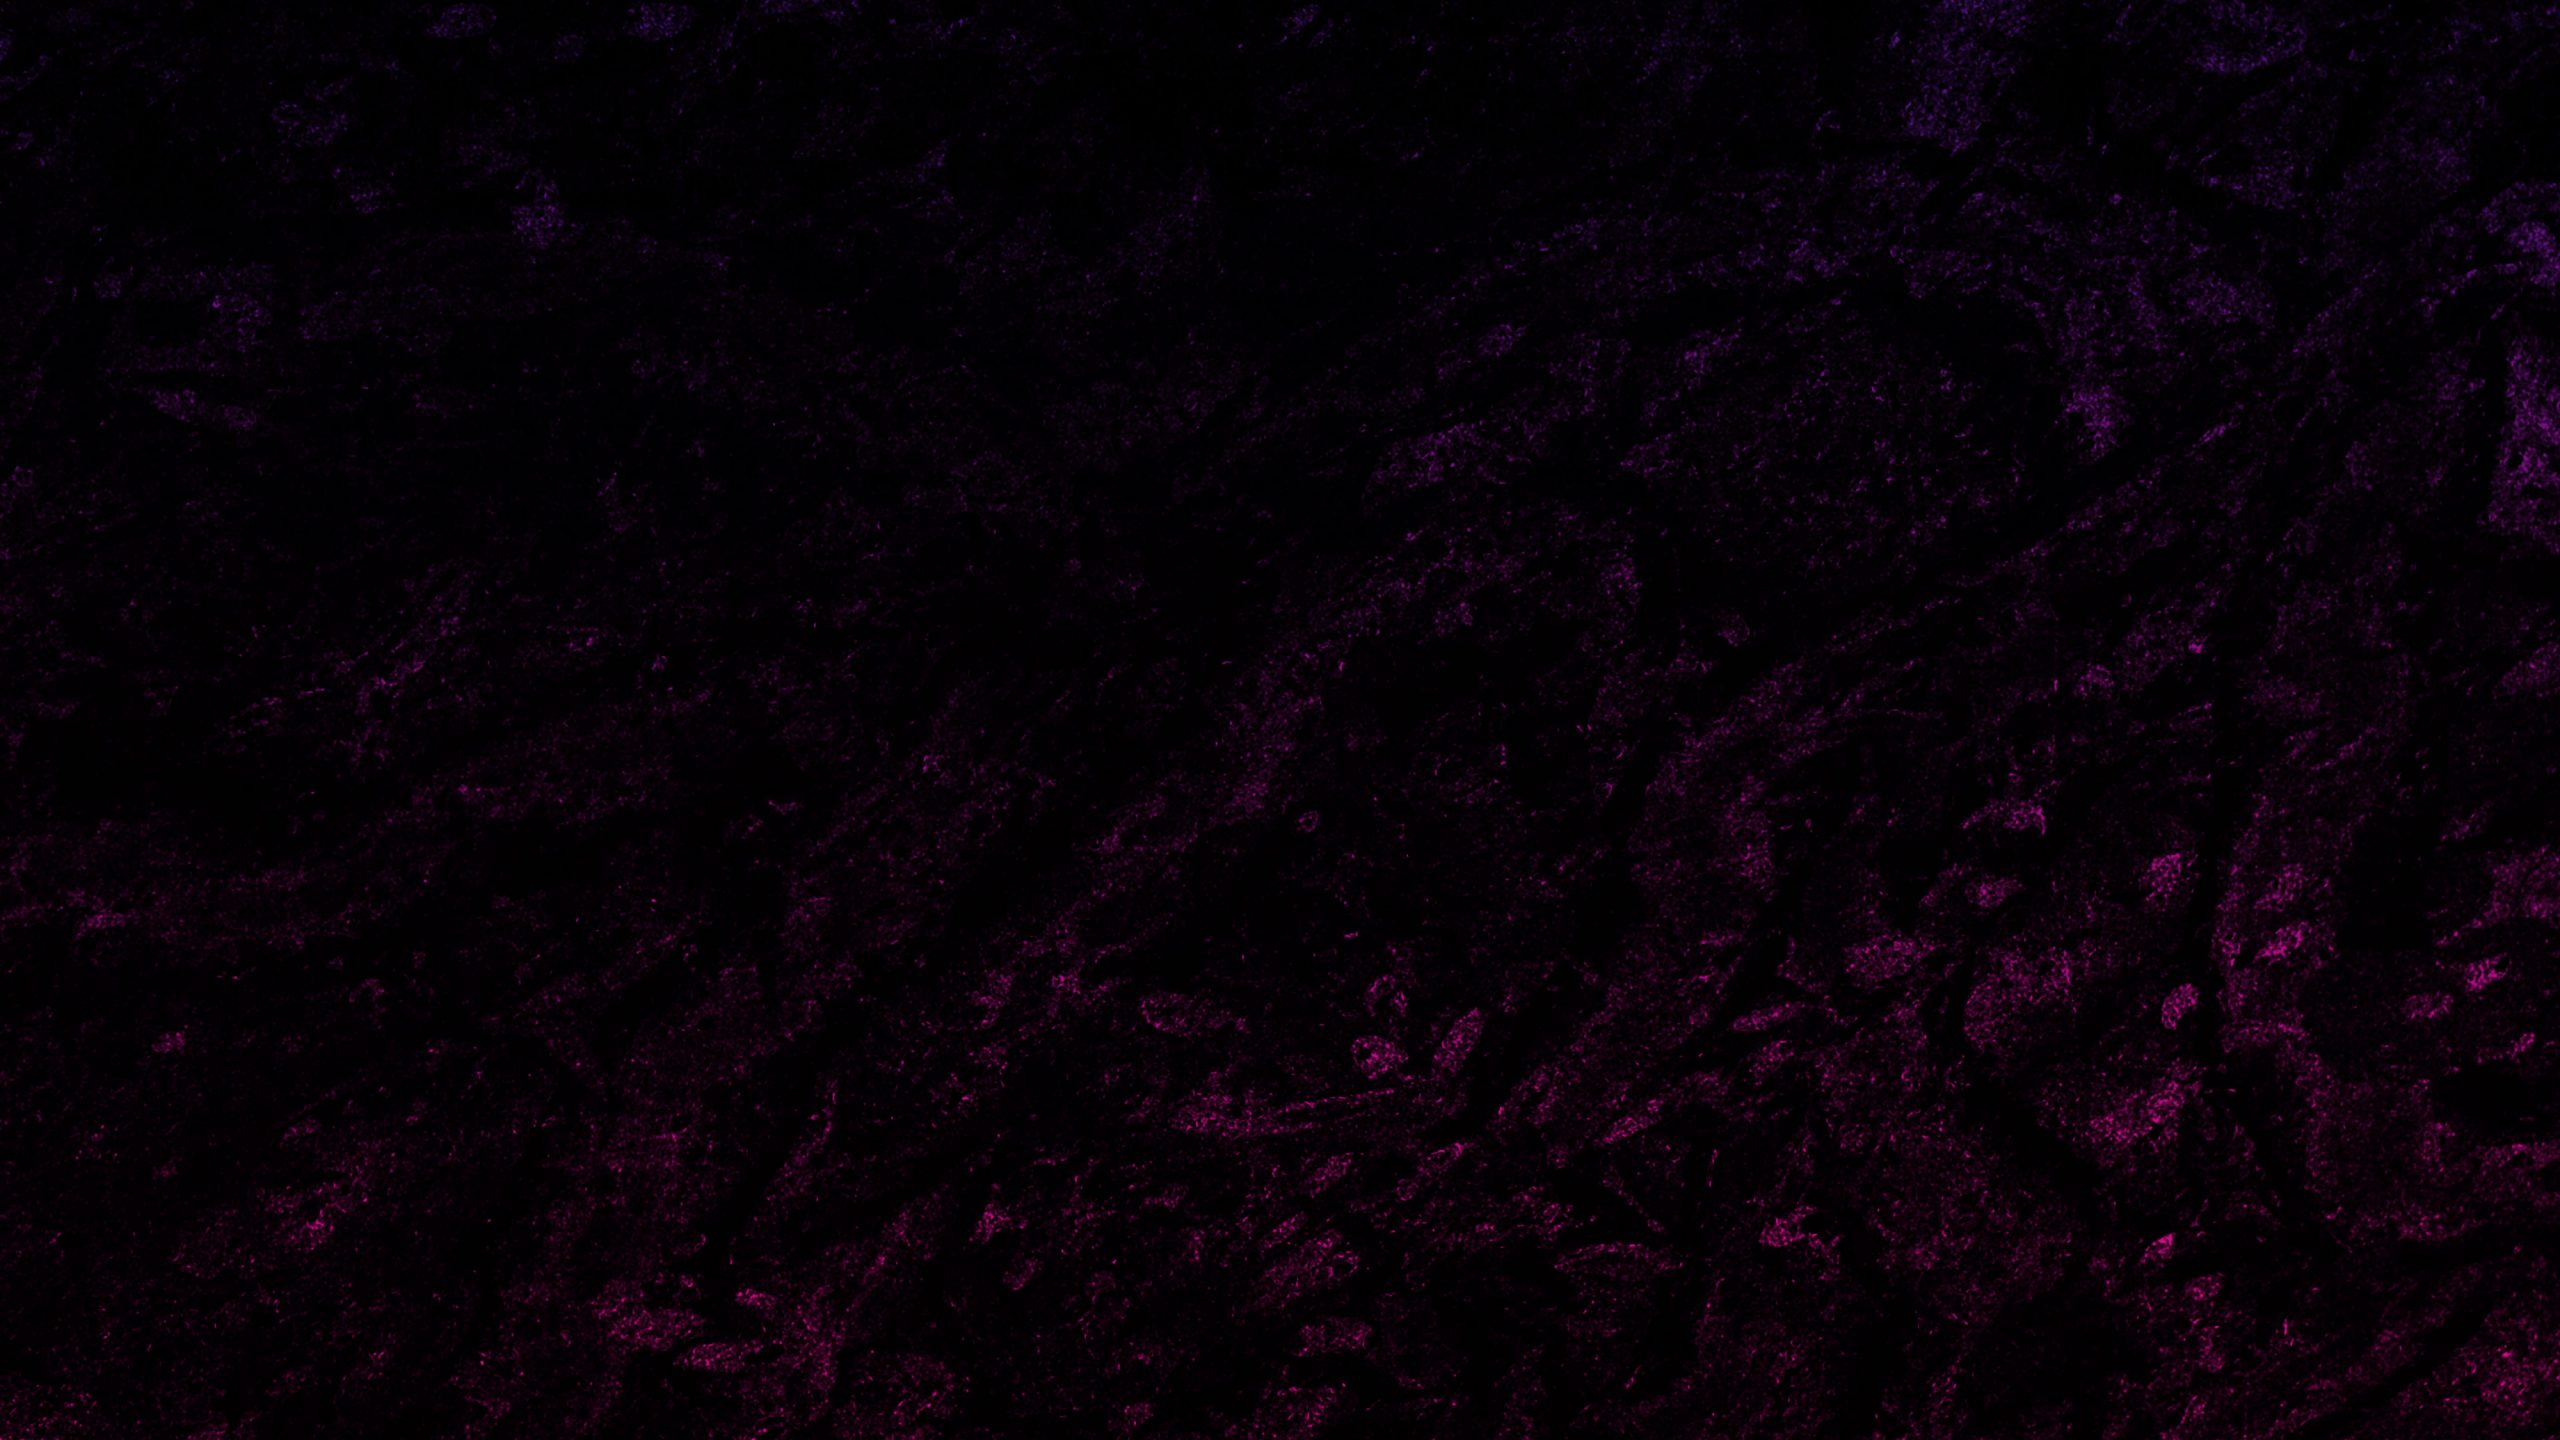 Purple and black texture wallpaper